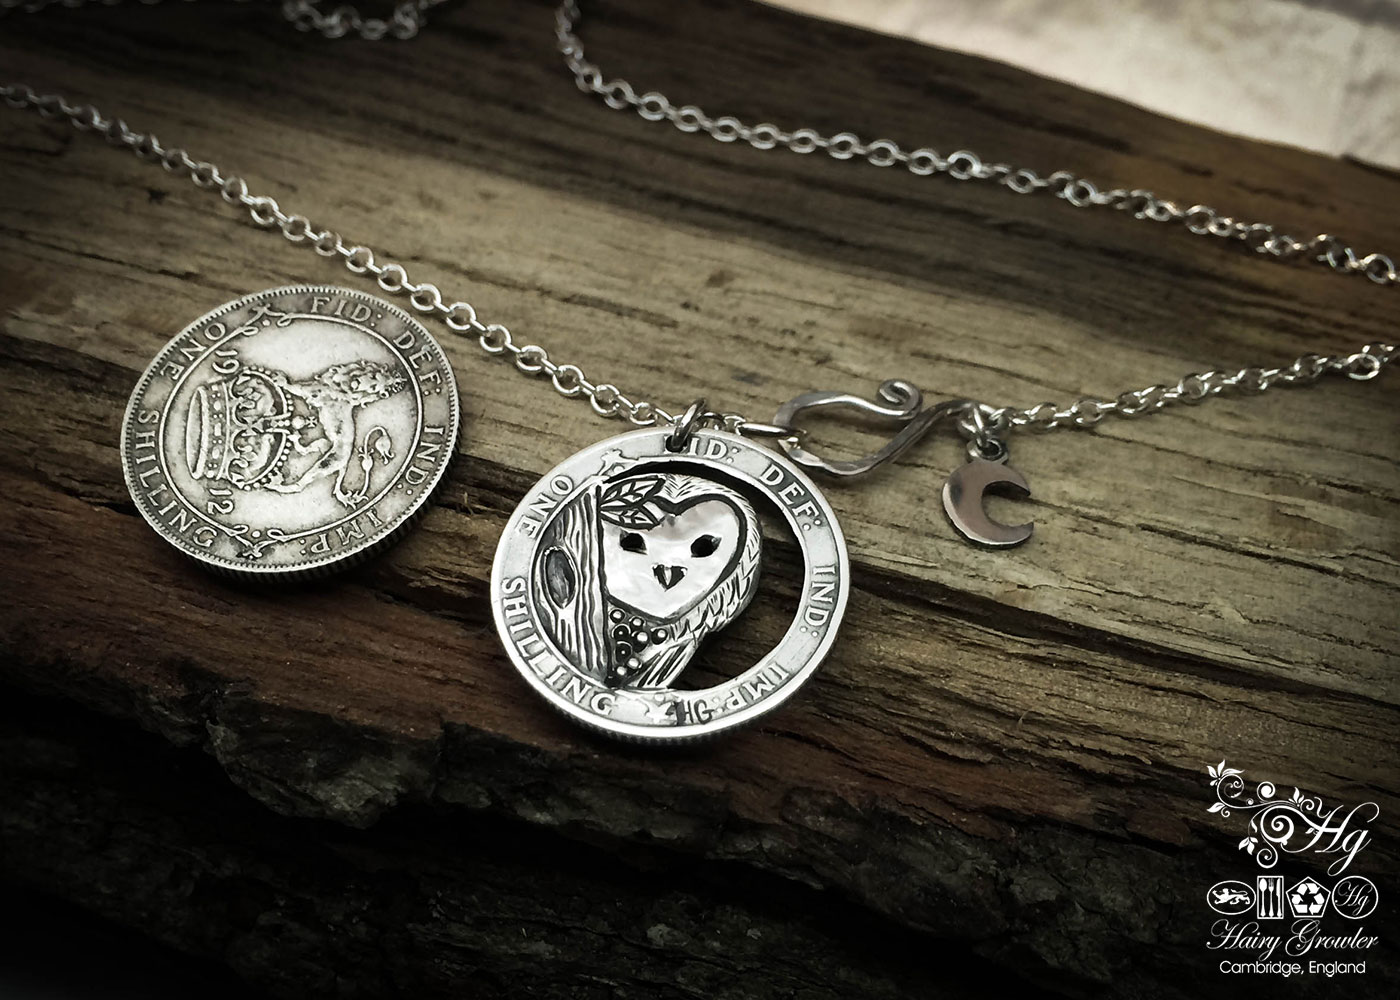 Handmade and recycled silver shilling The Silver Shilling collection. silver owl necklace totally handcrafted and recycled from old sterling silver shilling coins. Designed and created by Hairy Growler Jewellery, Cambridge, UK. necklace